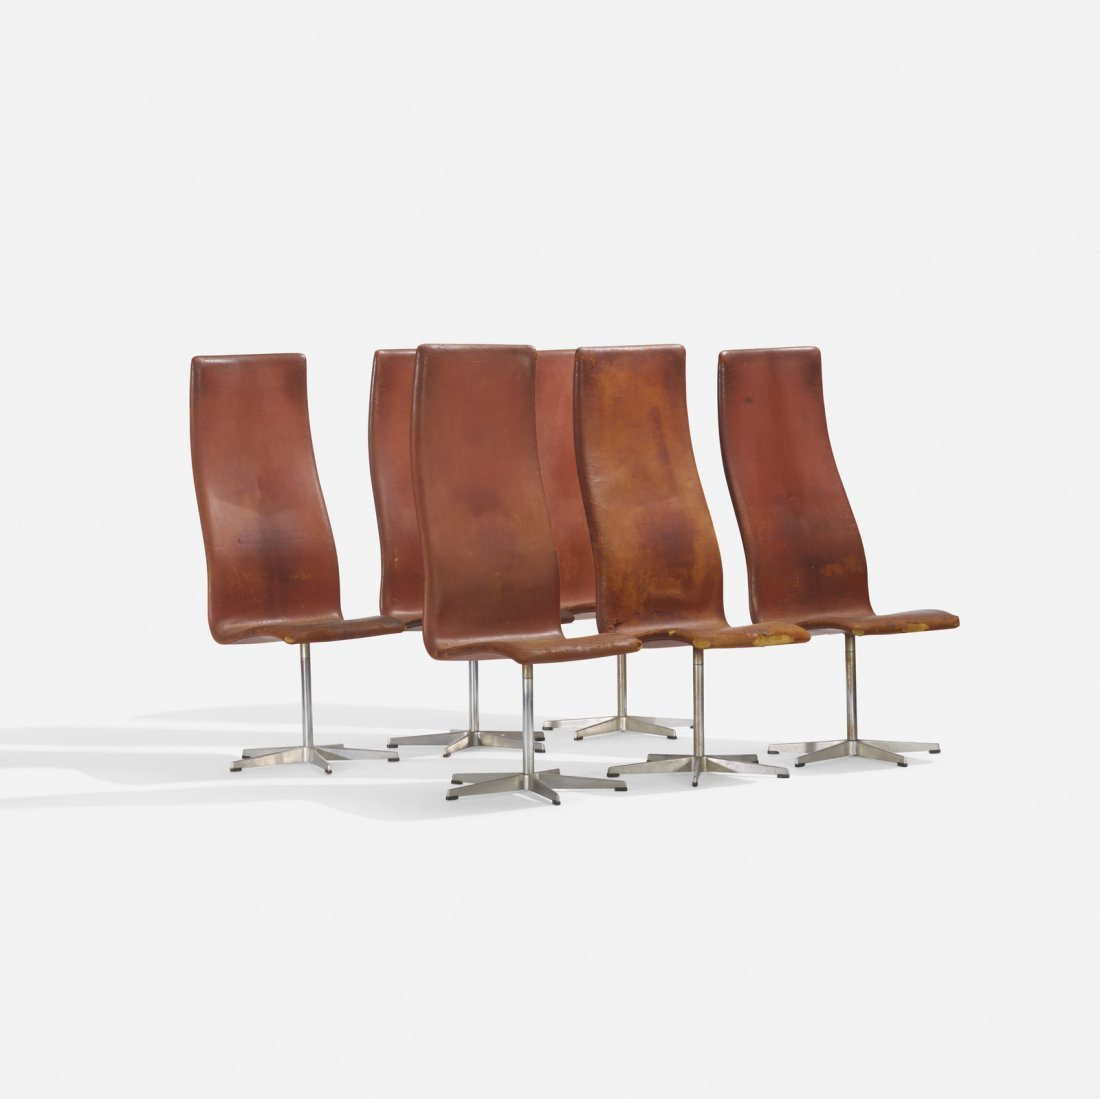 Arne Jacobsen, Oxford chairs model 7403, set of six